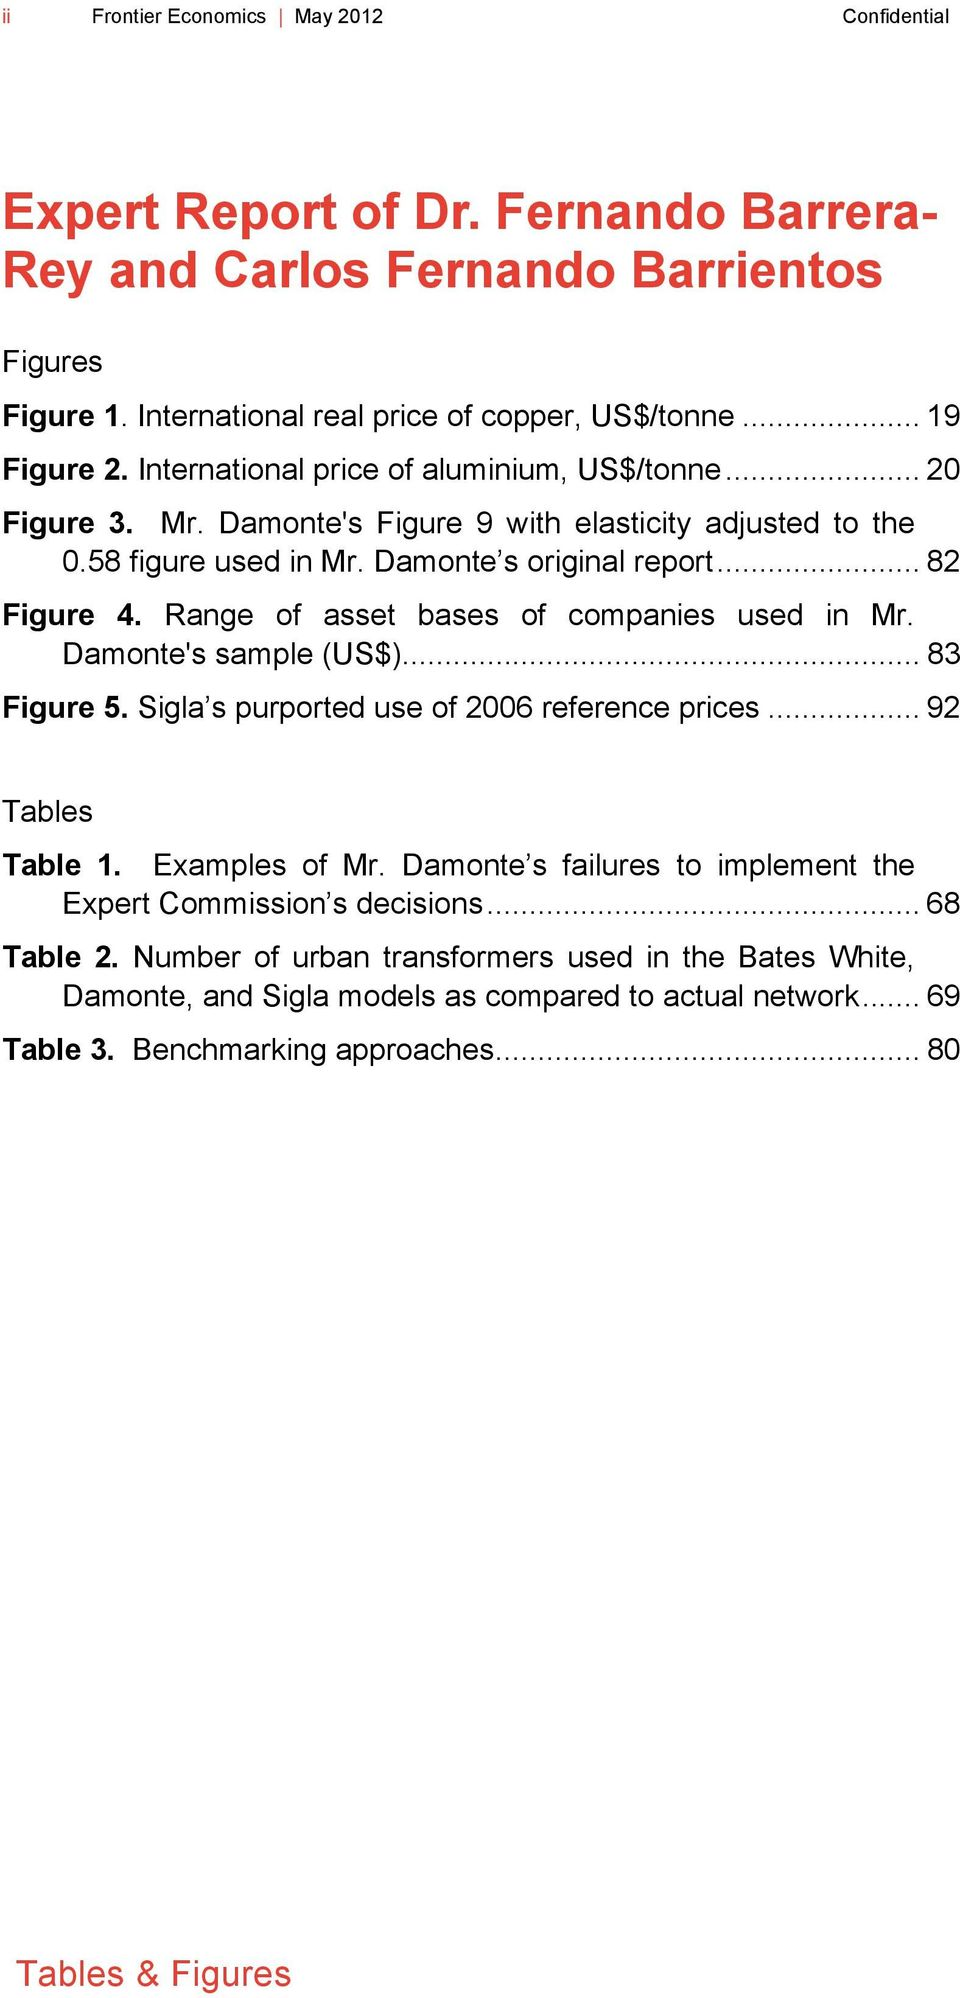 Range of asset bases of companies used in Mr. Damonte's sample (US$)... 83 Figure 5. Sigla s purported use of 2006 reference prices... 92 Tables Table 1. Examples of Mr.